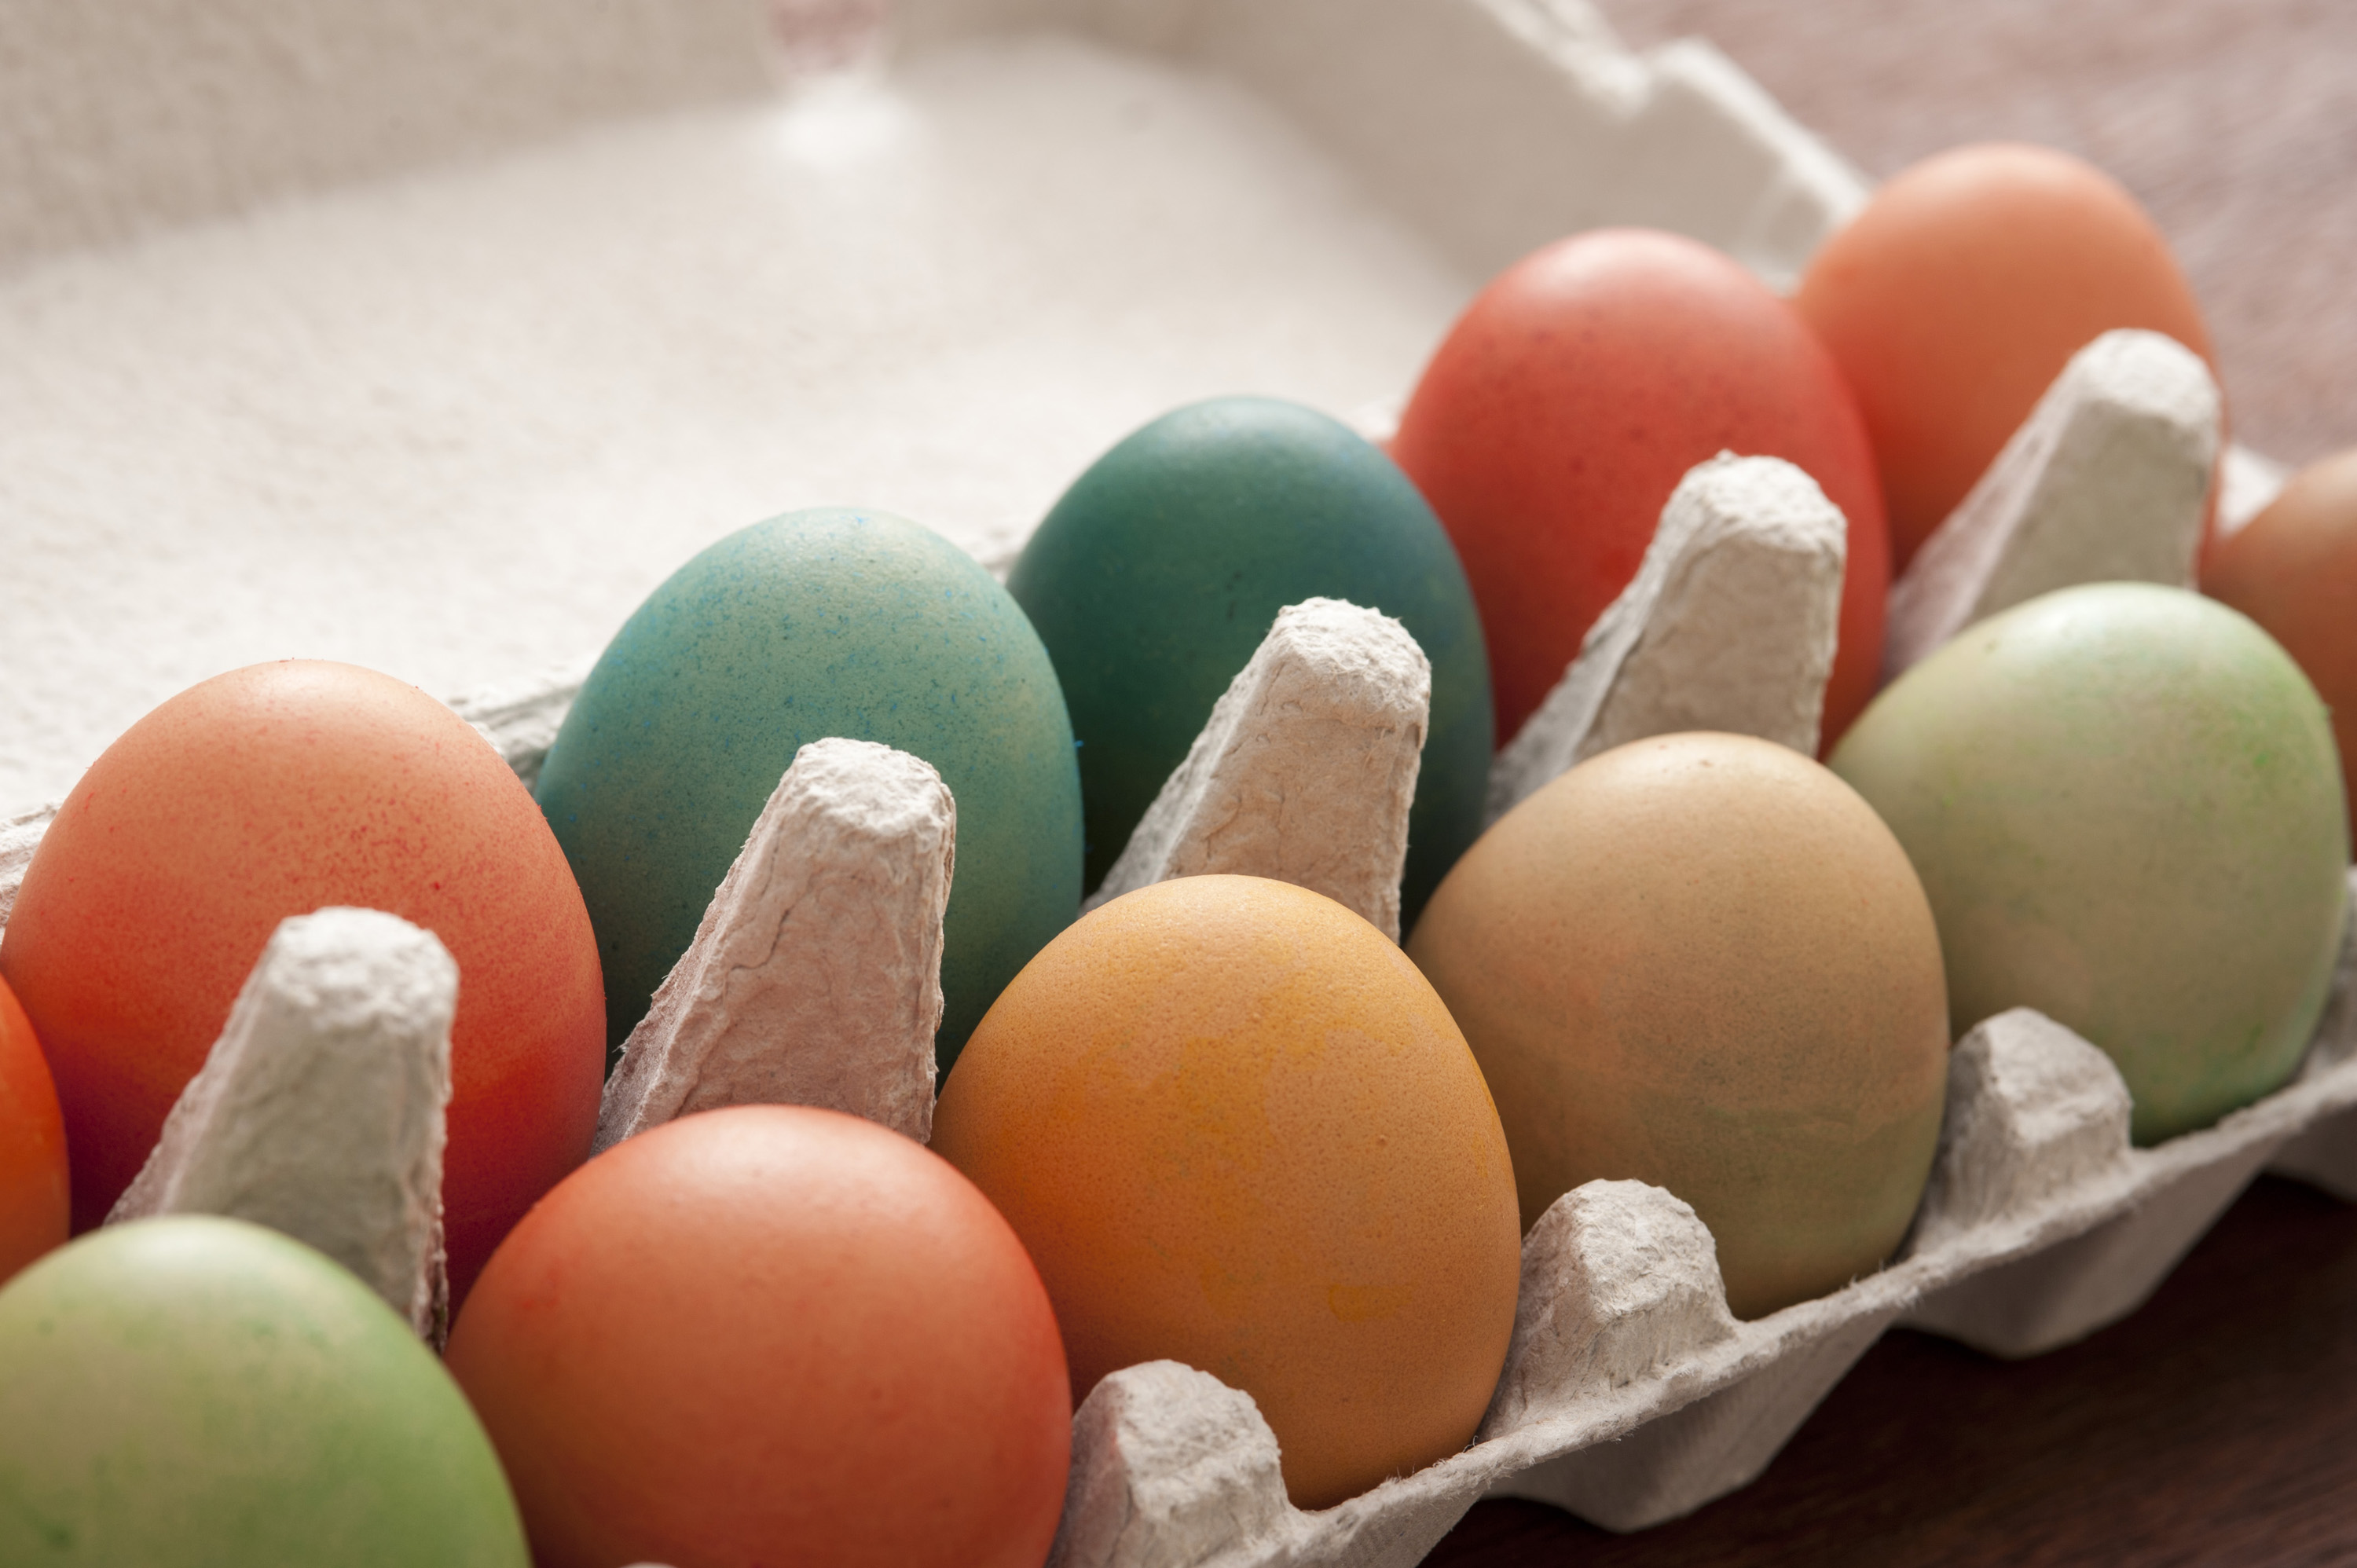 easter_real_eggs.jpg - Cardboard carton of colorful dyed Easter eggs homemade in the old tradition in a close up view with copy space for your seasonal greeting